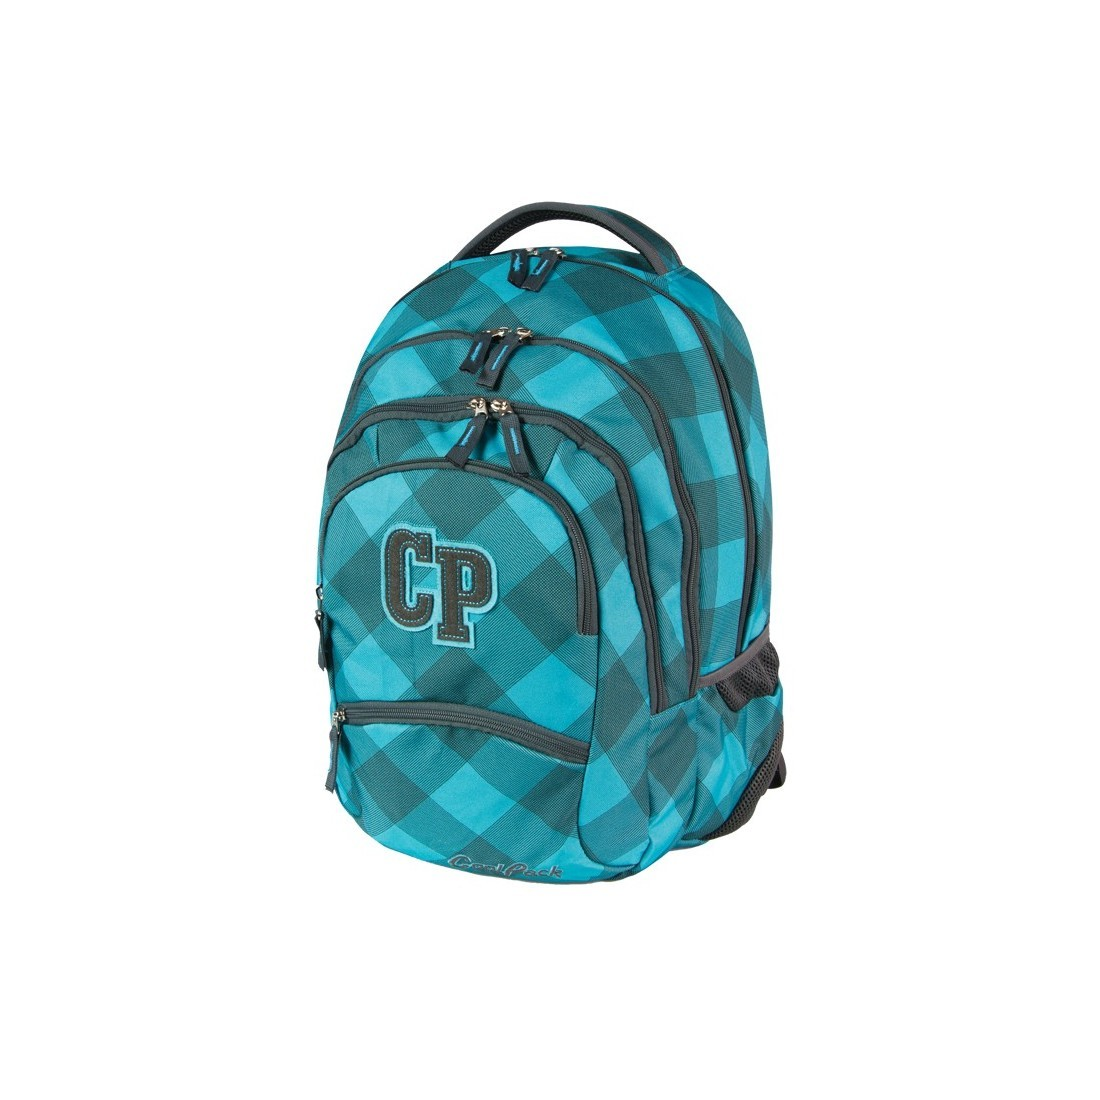 PLECAK MŁODZIEŻOWY COOLPACK COLLEGE TURQUISE CP 021 - plecak-tornister.pl